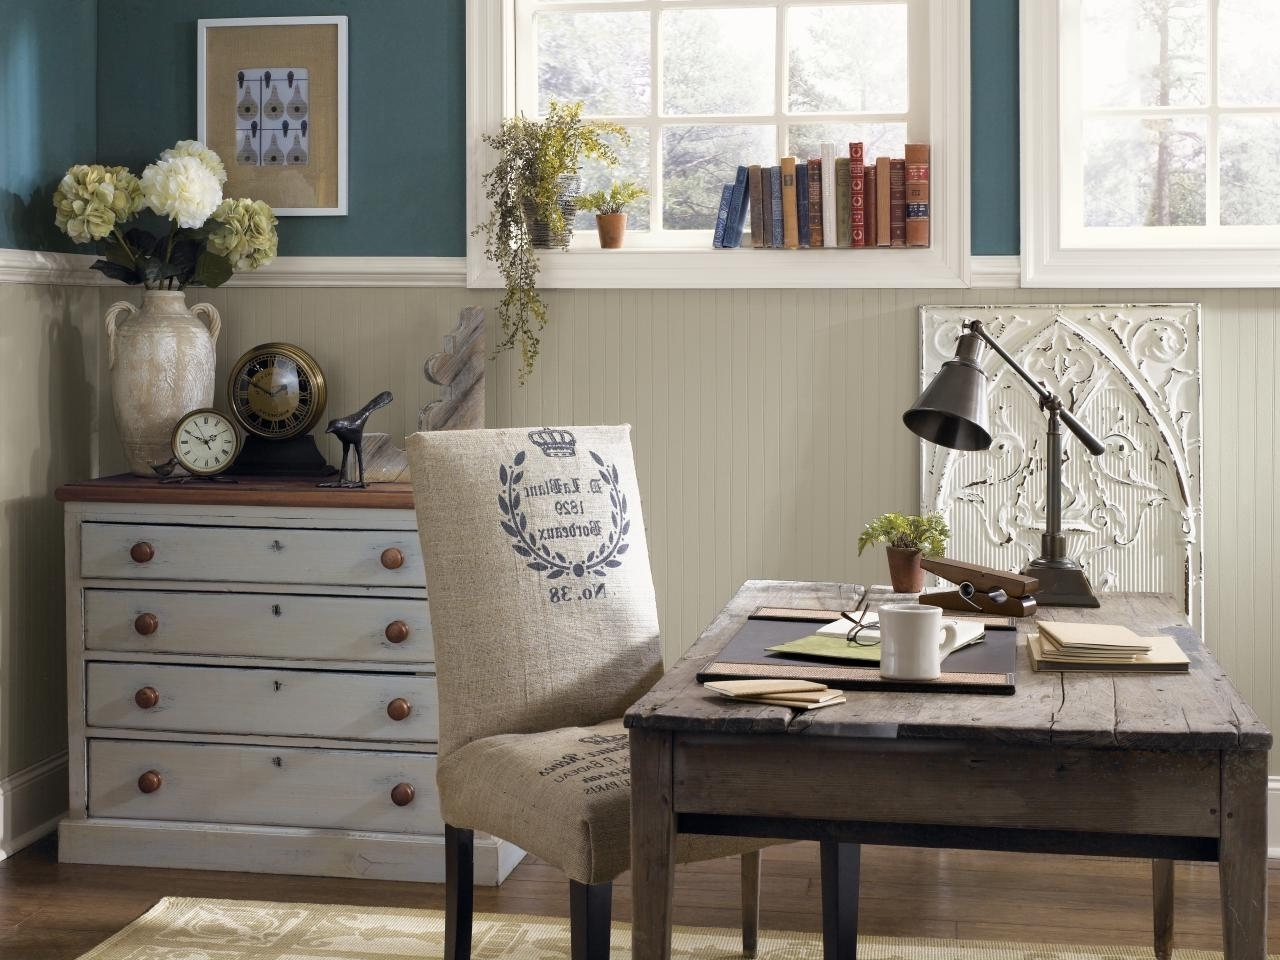 25 Brilliant Rustic Home Office Decorating Ideas